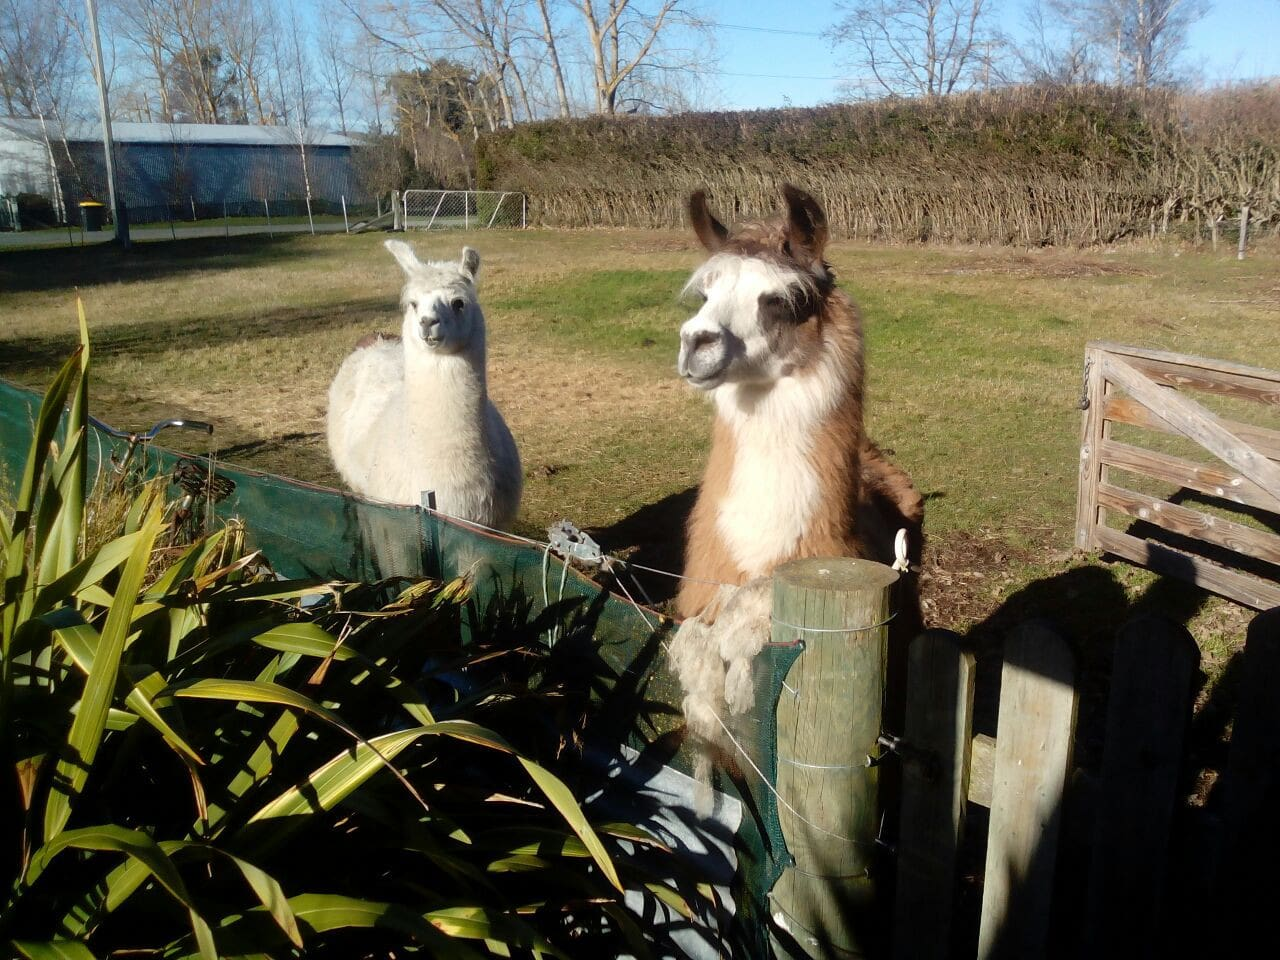 The Llama are waiting to greet you!